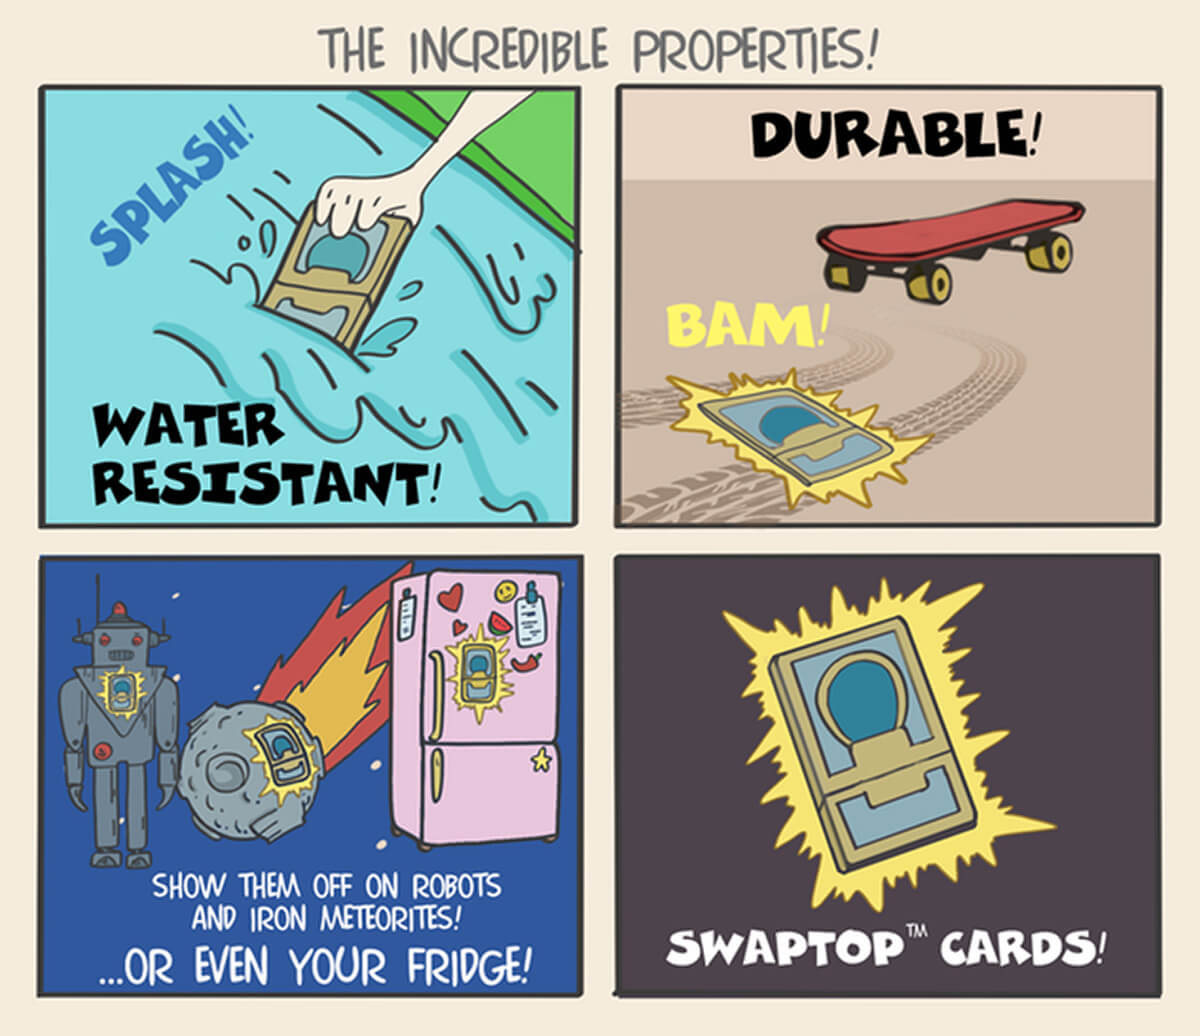 The Incredible Properties of Swaptop Cards